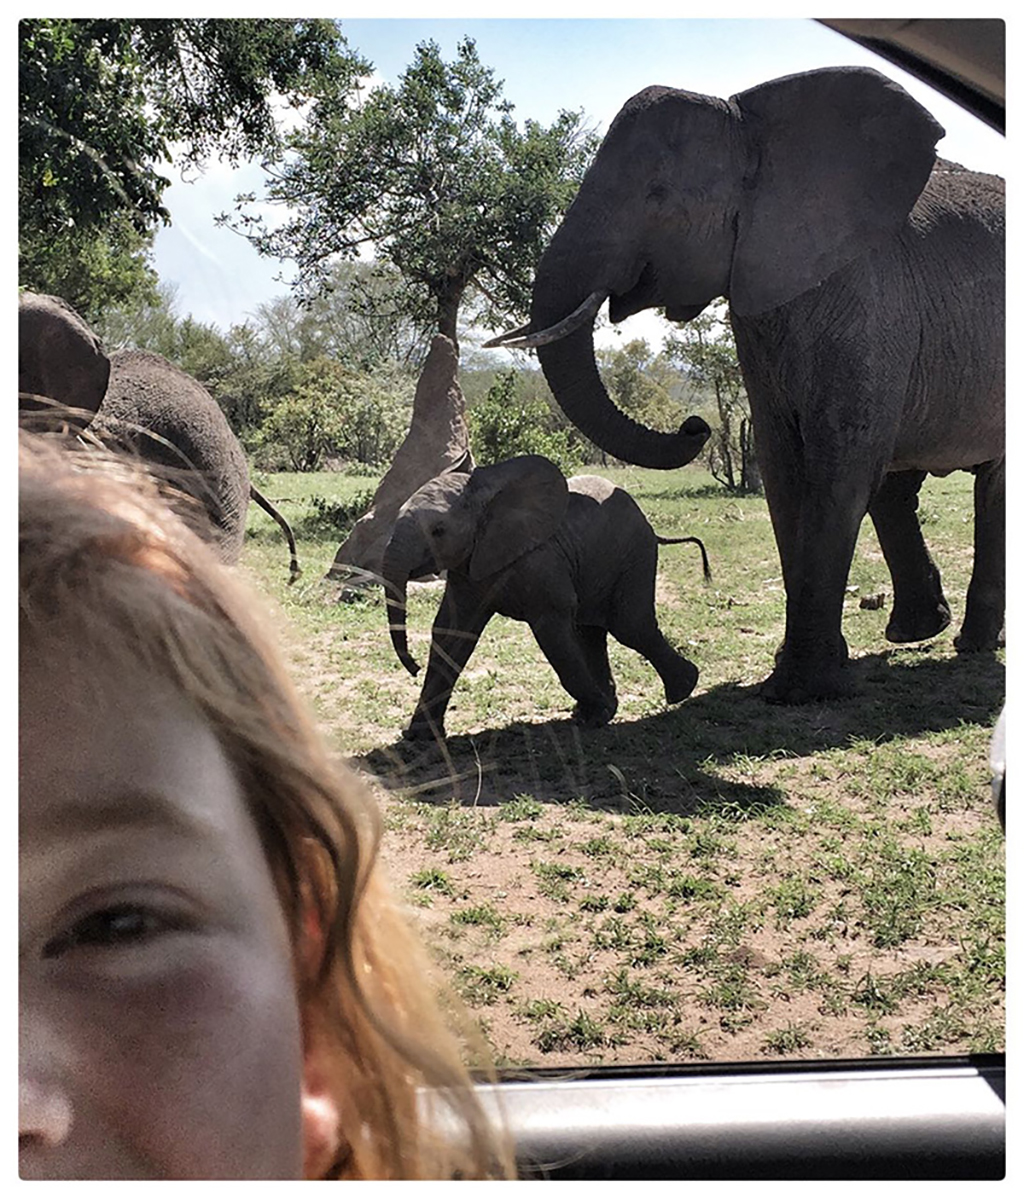 Taeghan Langdon on a game drive and Ulusaba taking a selfie with two elephants